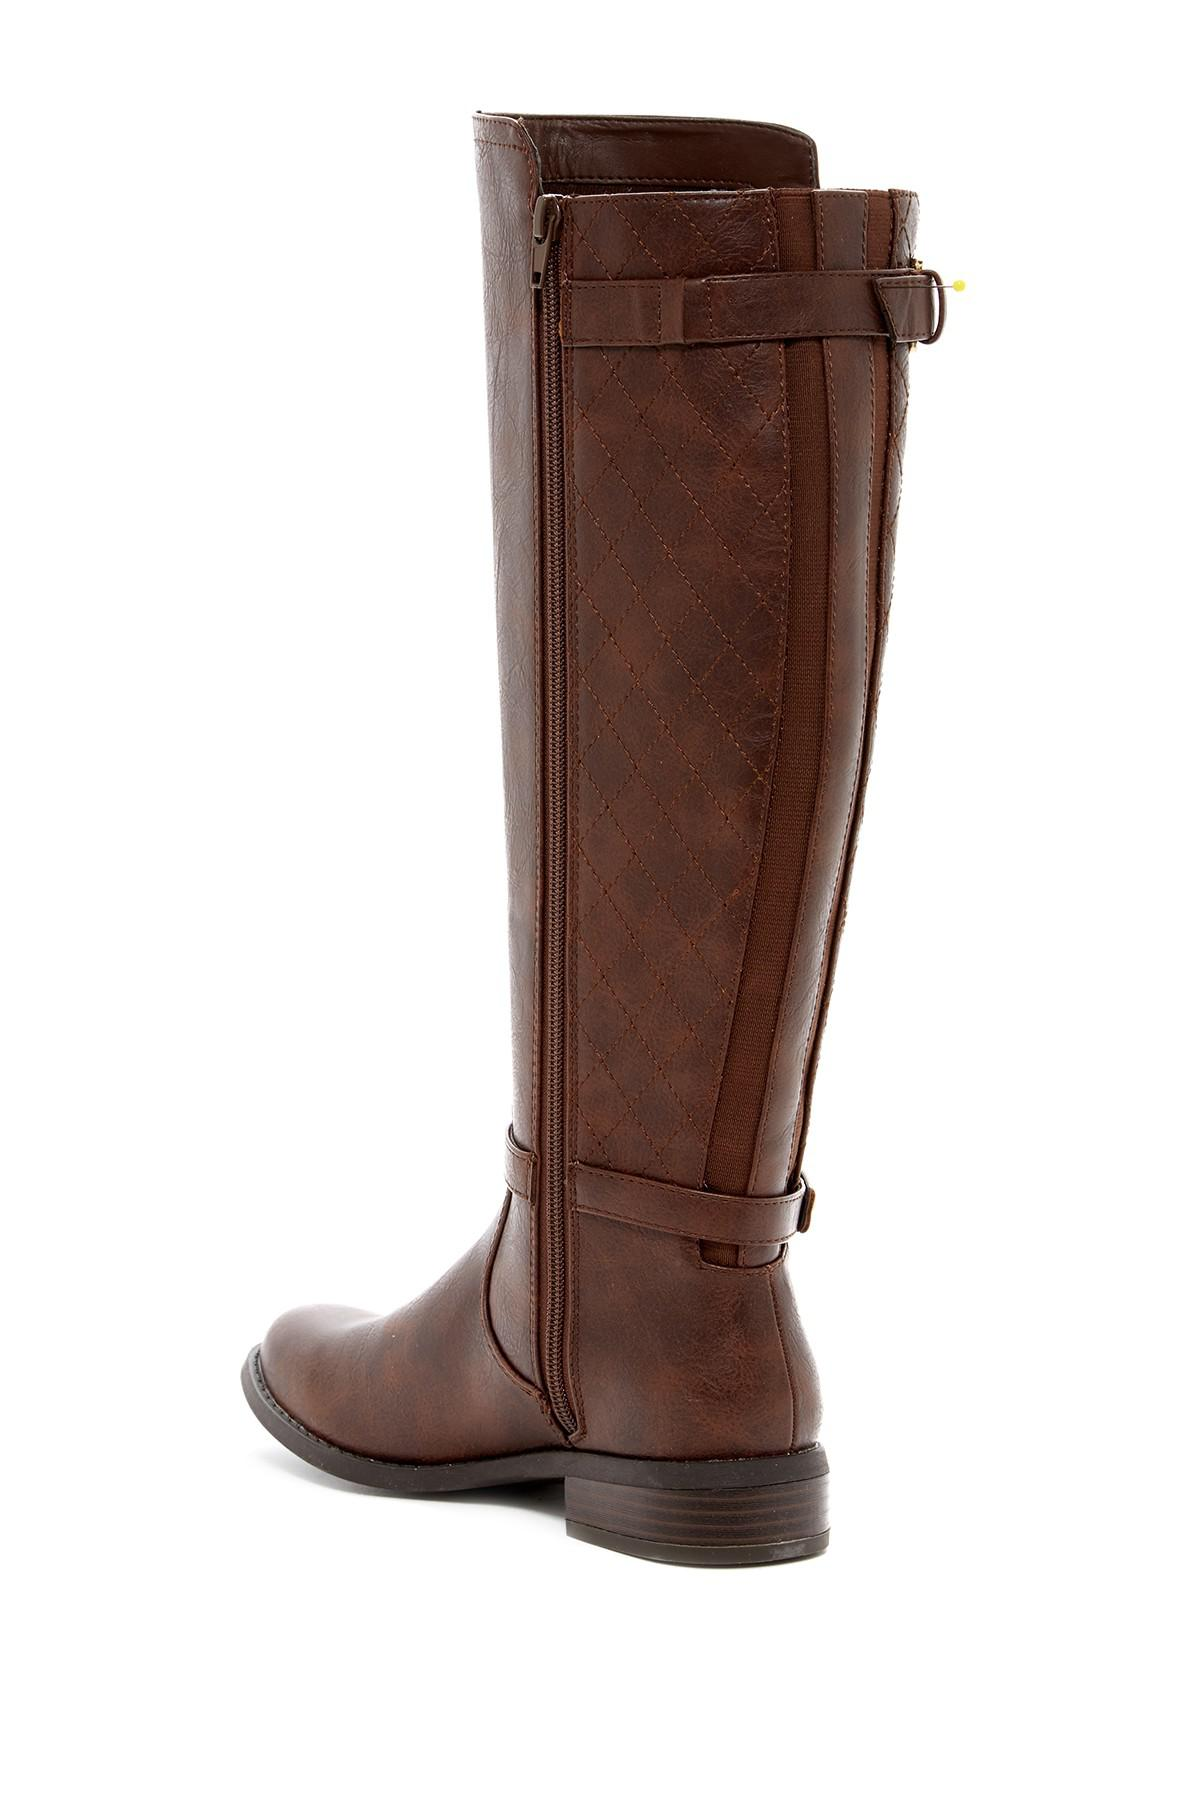 G by Guess Hinnder Boot in Brown - Lyst